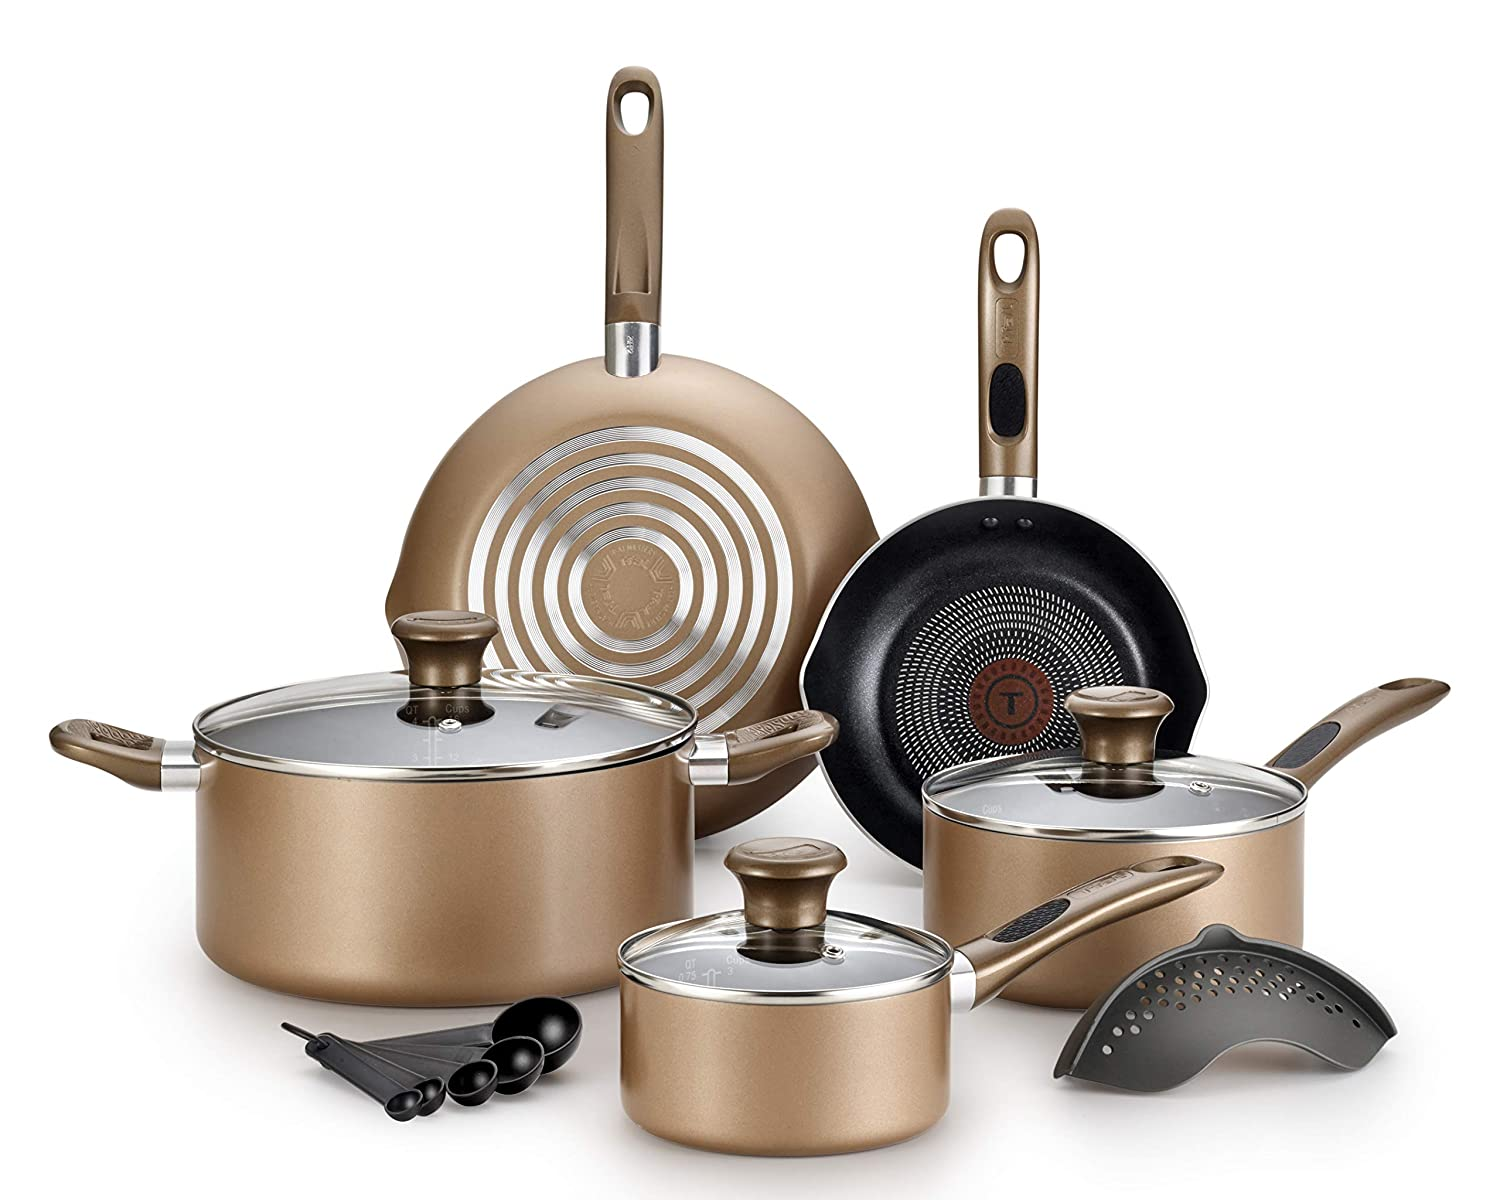 T-fal B036SE64 B036SE Excite ProGlide Nonstick Thermo-Spot Heat Indicator Dishwasher Oven Safe Cookware Set, 14-Piece, Bronze